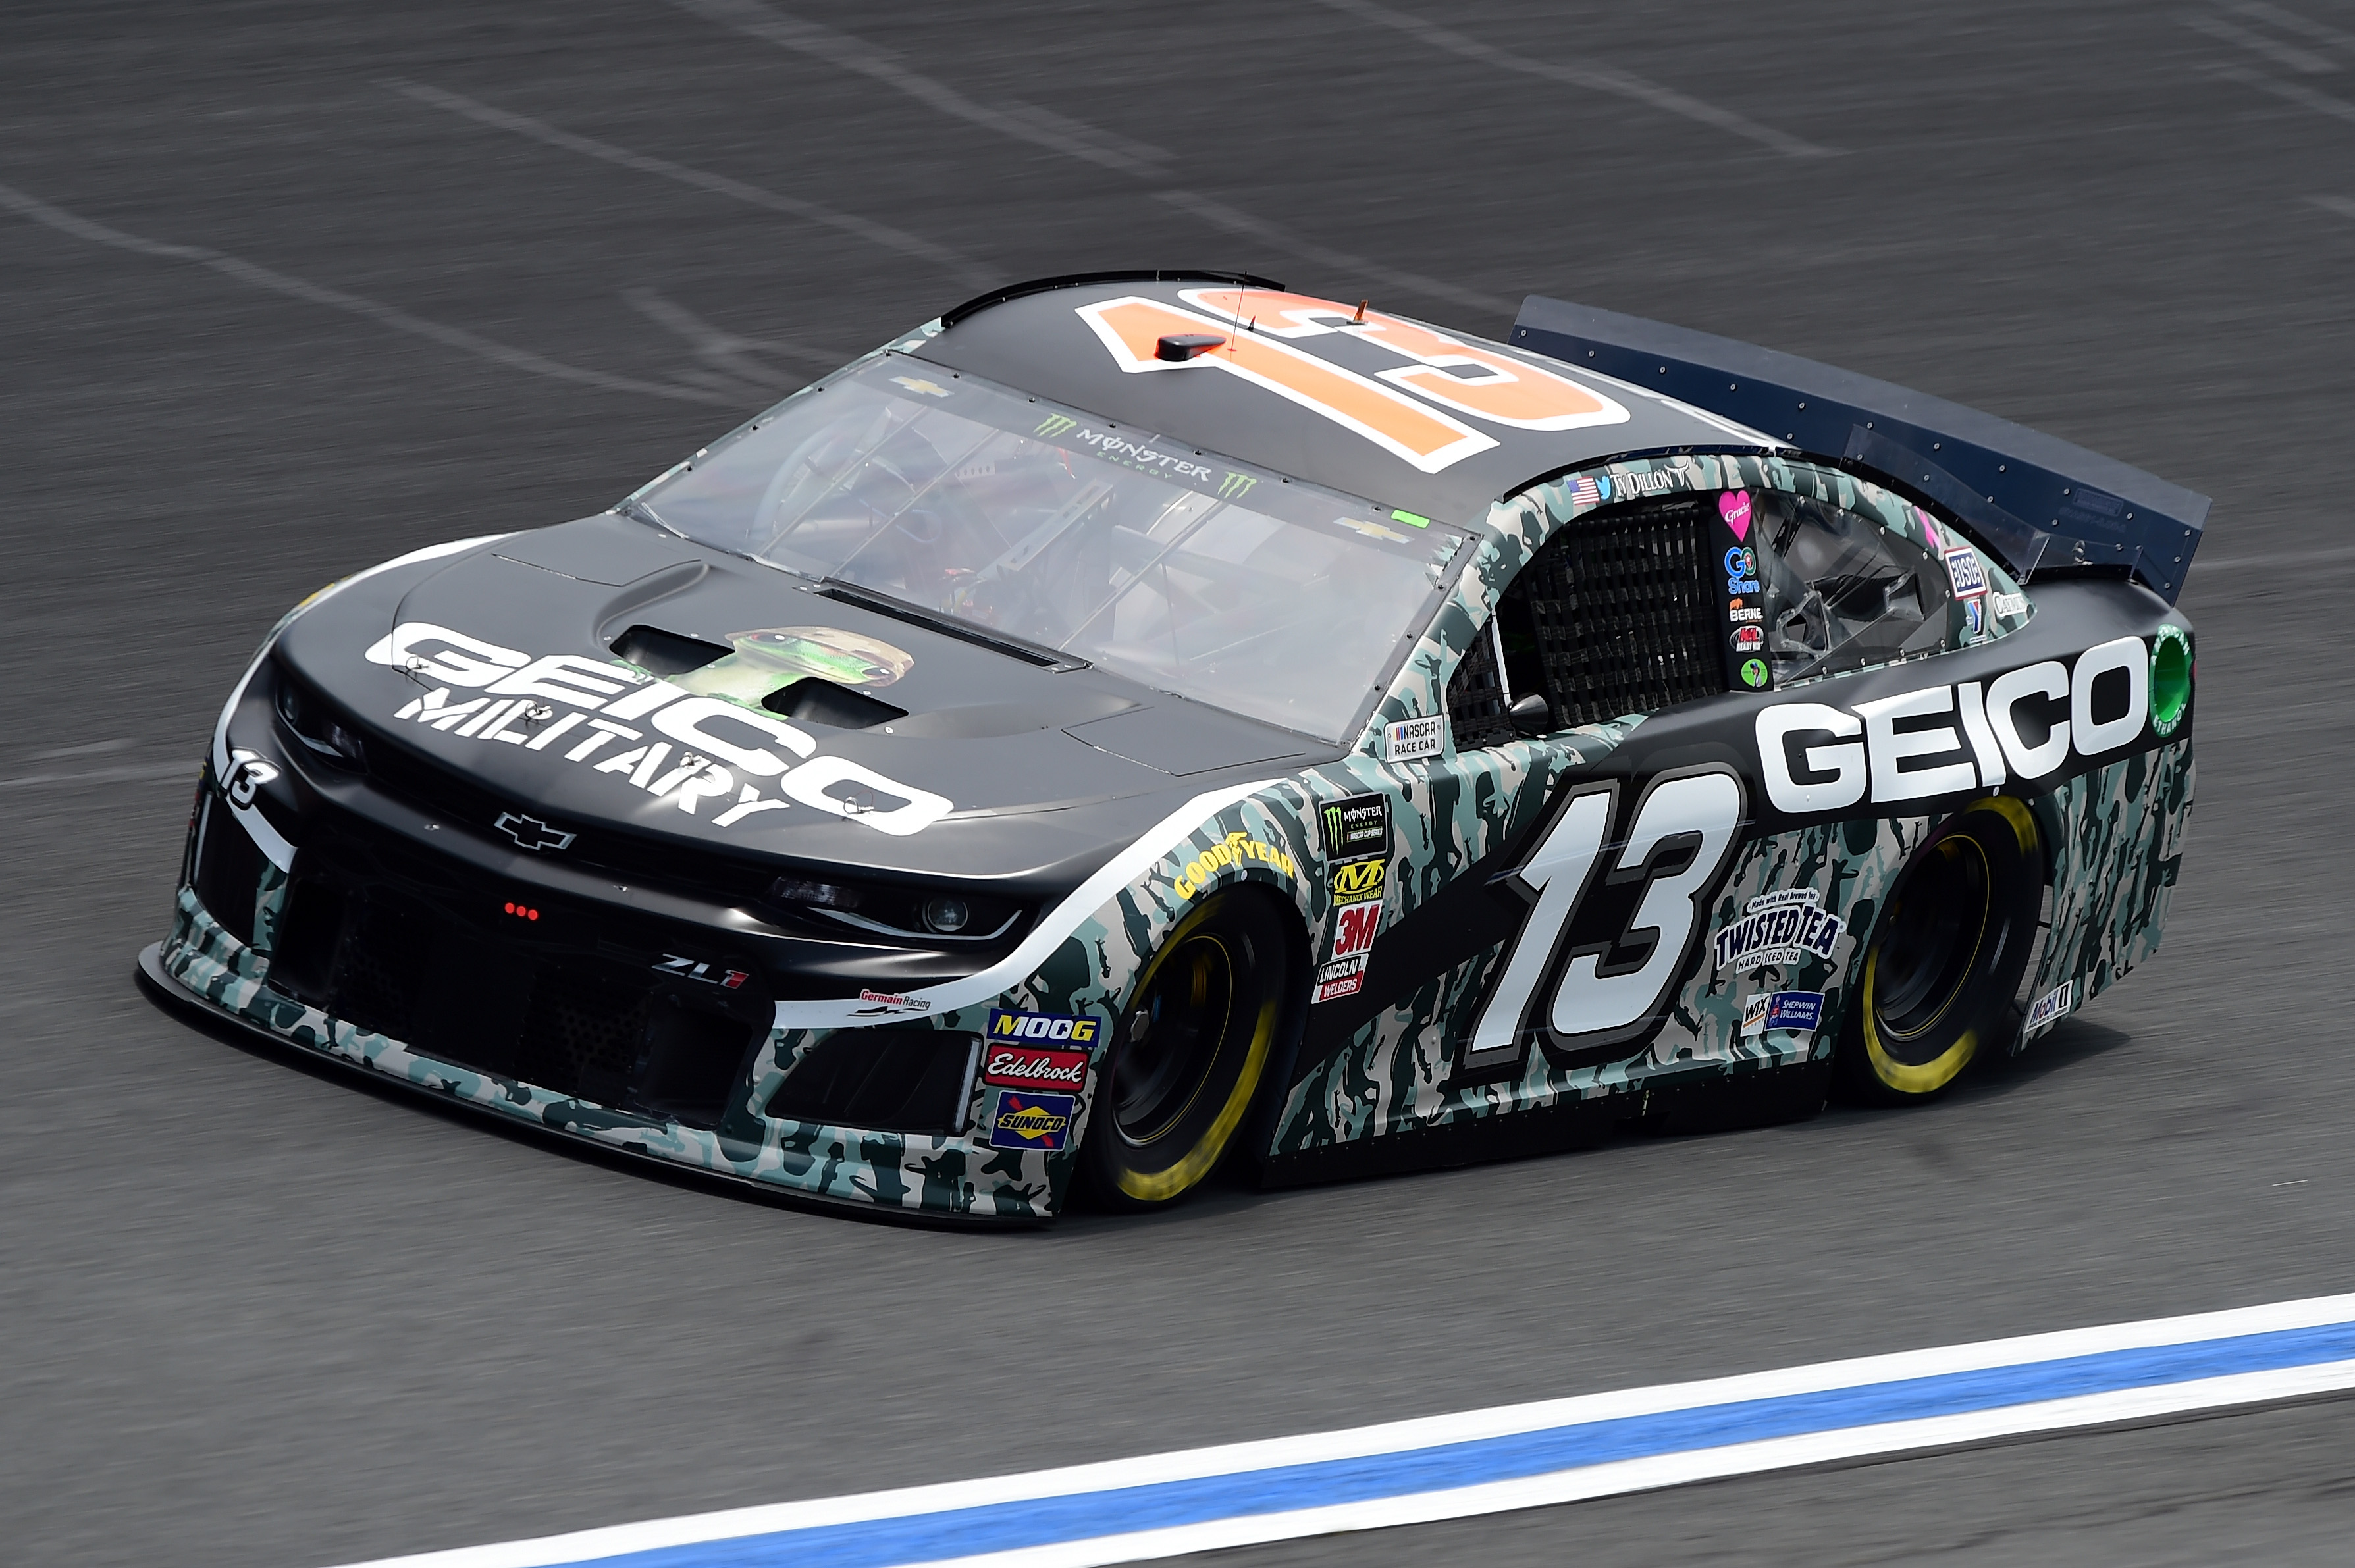 CHARLOTTE, NC - MAY 17: Ty Dillon, driver of the #13 GEICO Military Chevrolet, practices for the Monster Energy NASCAR Cup Series All-Star Race and the Monster Energy NASCAR Cup Series Open Race at Charlotte Motor Speedway on May 17, 2019 in Charlotte, North Carolina. (Photo by Jared C. Tilton/Getty Images) | Getty Images